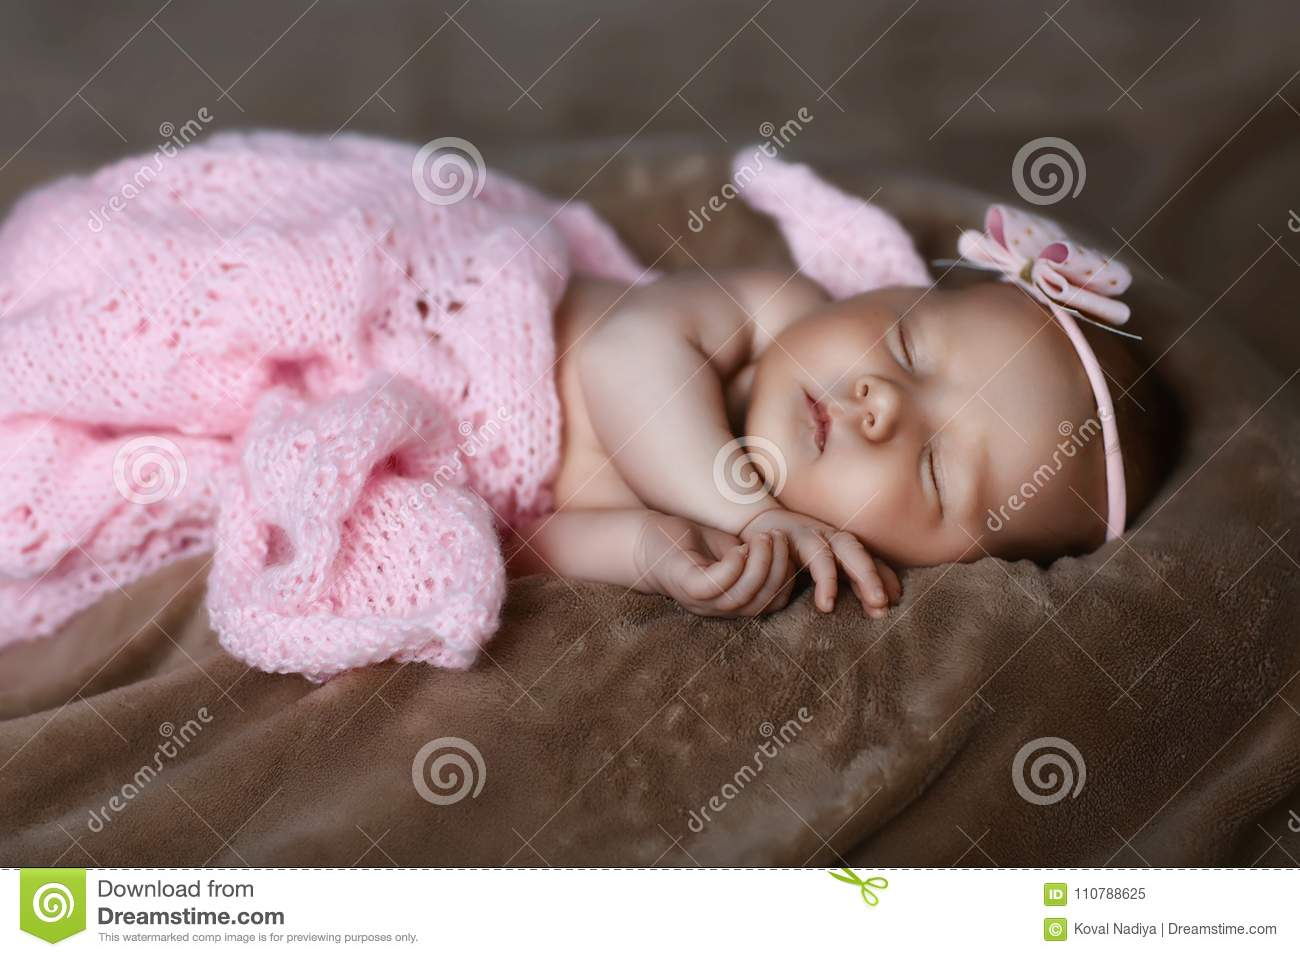 Newborn baby girl sleeping cute, covered with soft pink scarf, neatly folded under a pen with a small head with a pink bow, set